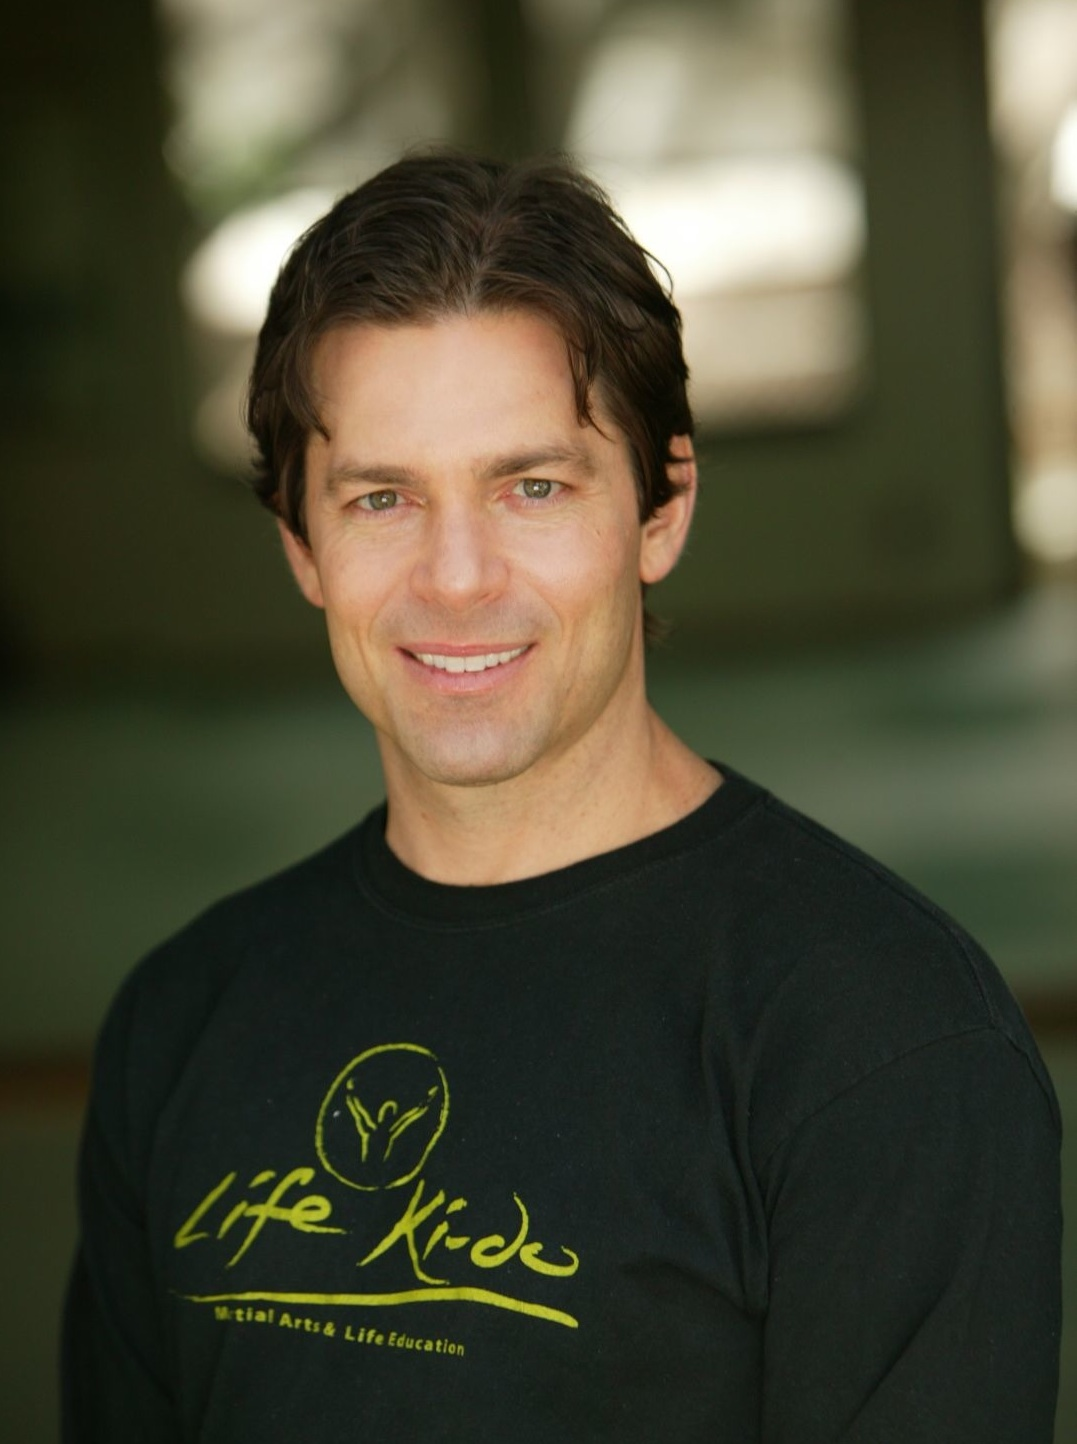 Jonathan Hewitt, Founder of Life Ki-Do